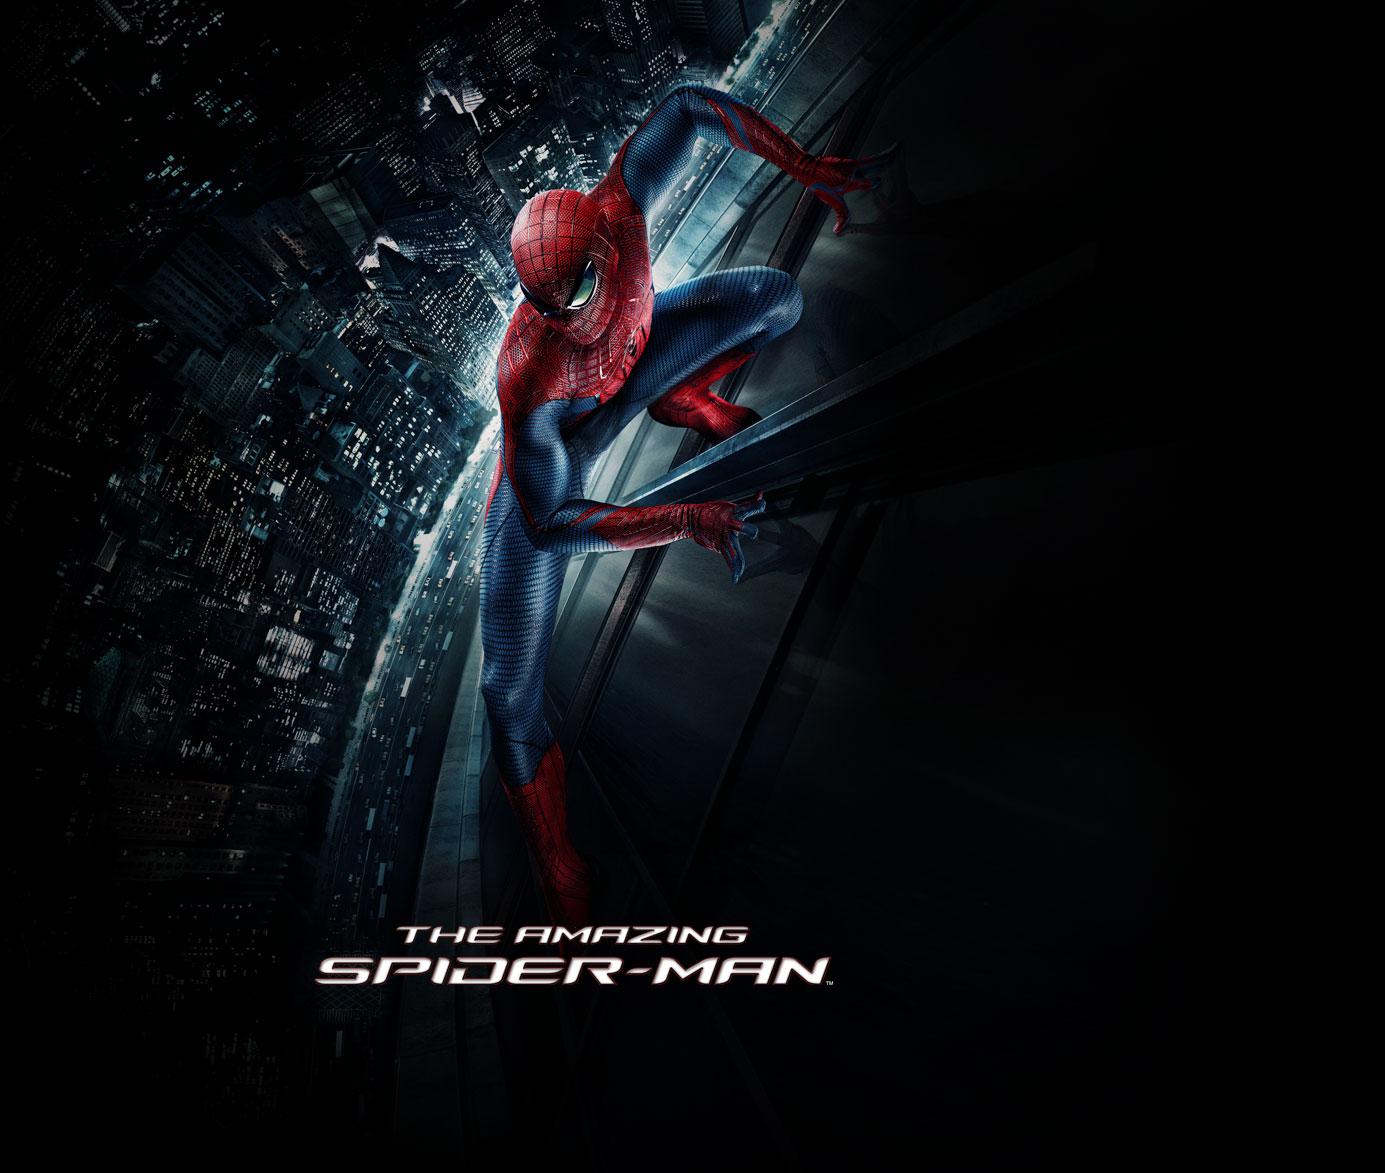 the amazing spider-man tablet pc wallpapers ~ tablet pc wallpapers